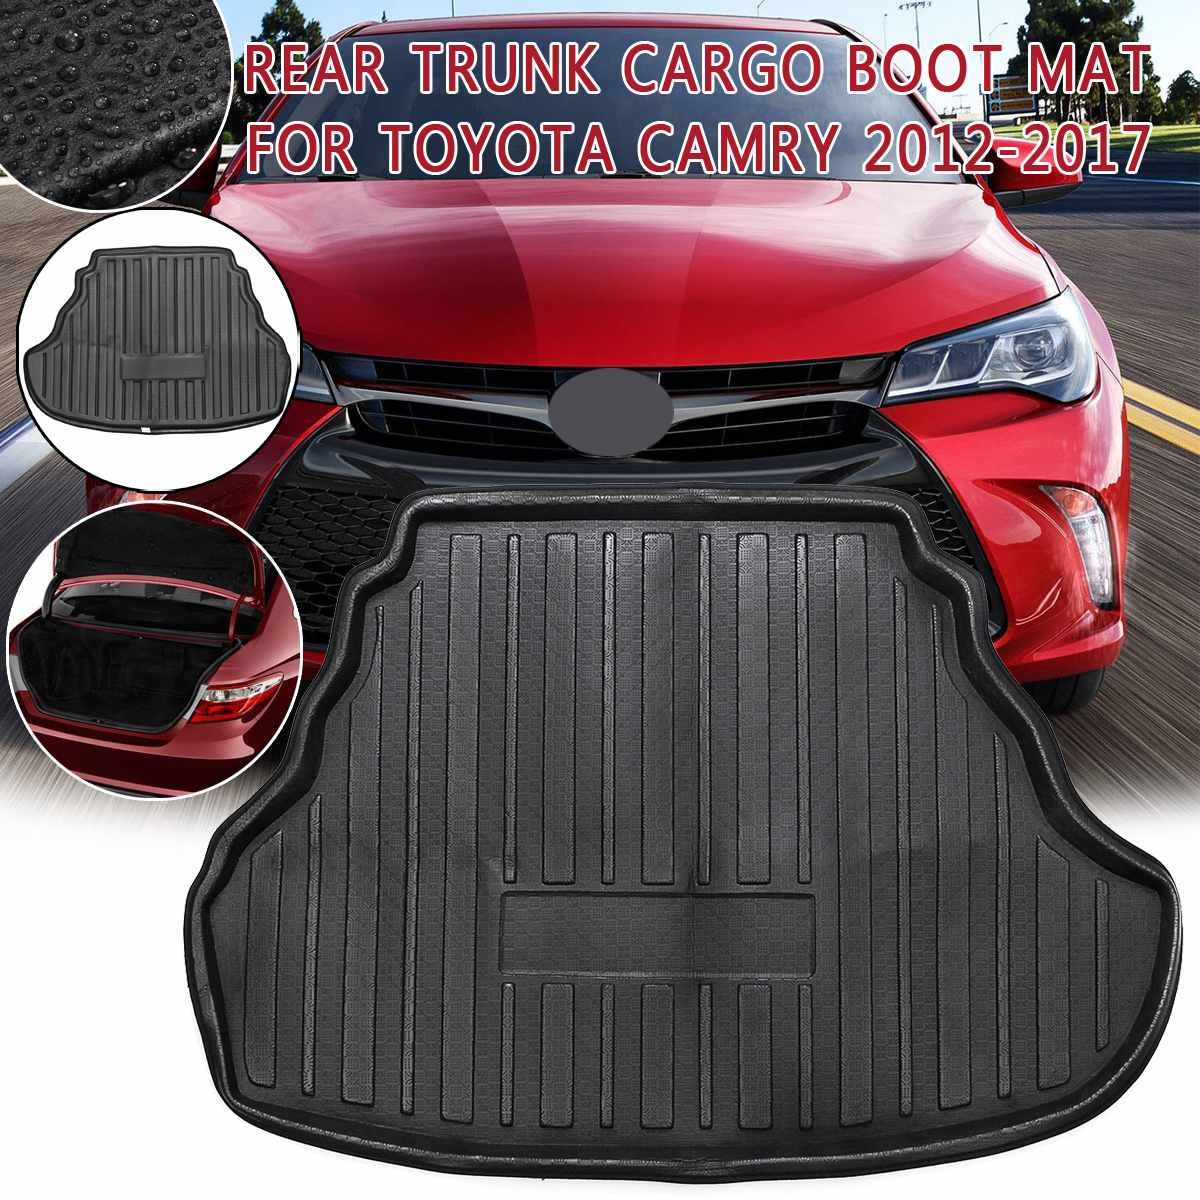 Rear Trunk Cargo Mat Tray Boot Liner Floor Carpet Mud Kick Protector For Toyota Camry 2012 2013 2014 2015 2016 2017 Auto Accesso